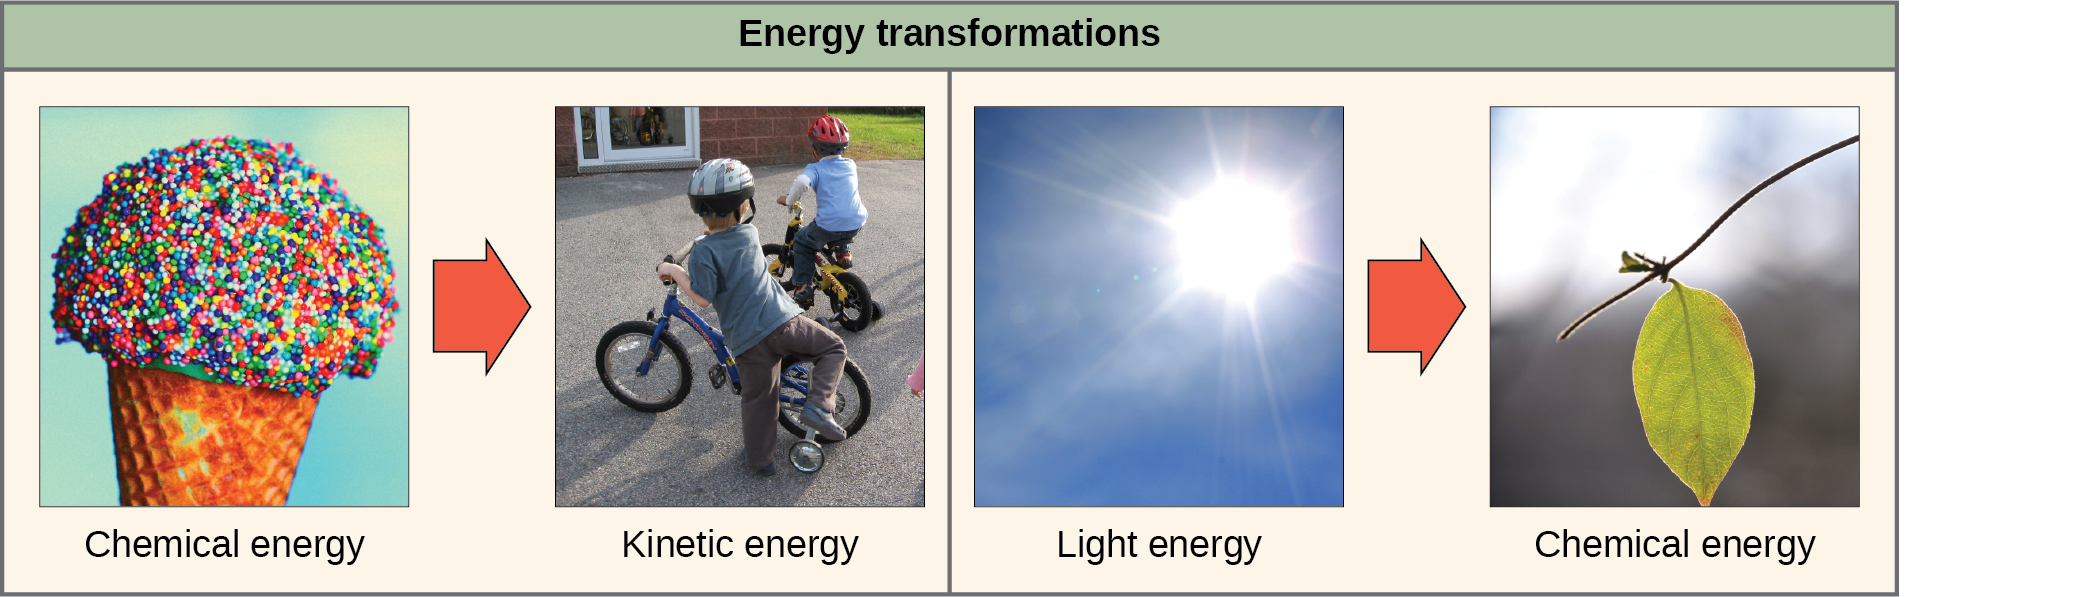 The left side of this diagram depicts energy being transferred from an ice cream cone to two boys riding a bike; this is described as chemical energy to kinetic energy. The right side depicts a plant converting light energy into chemical energy.